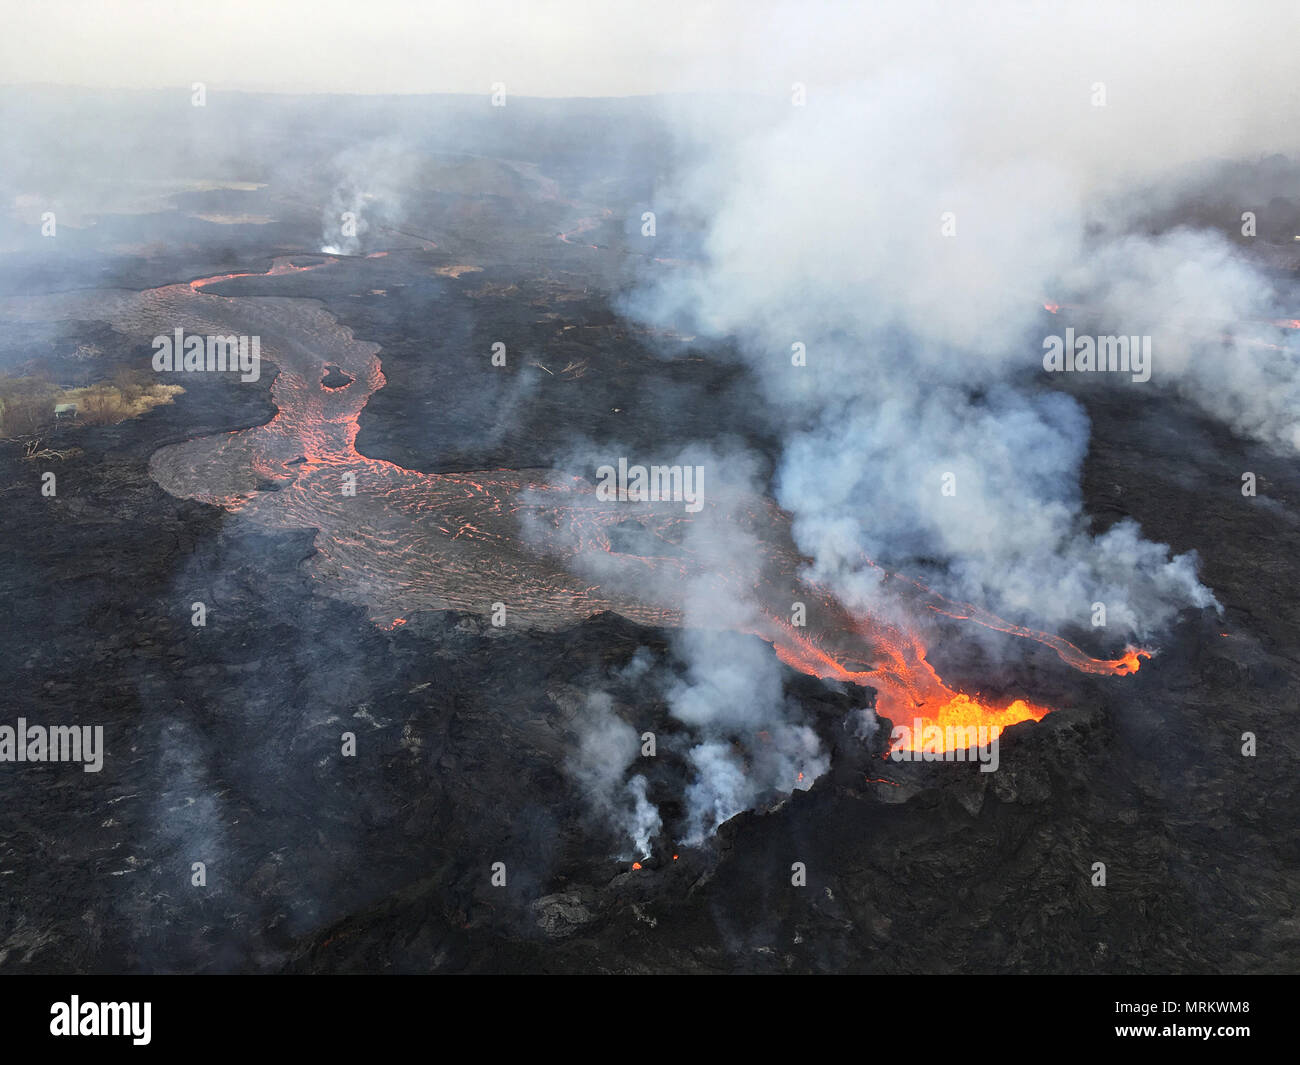 Channelized lava streams down fissure 22 in the East Rift Zone from the eruption of the Kilauea volcano May 24, 2018 in Pahoa, Hawaii. Stock Photo